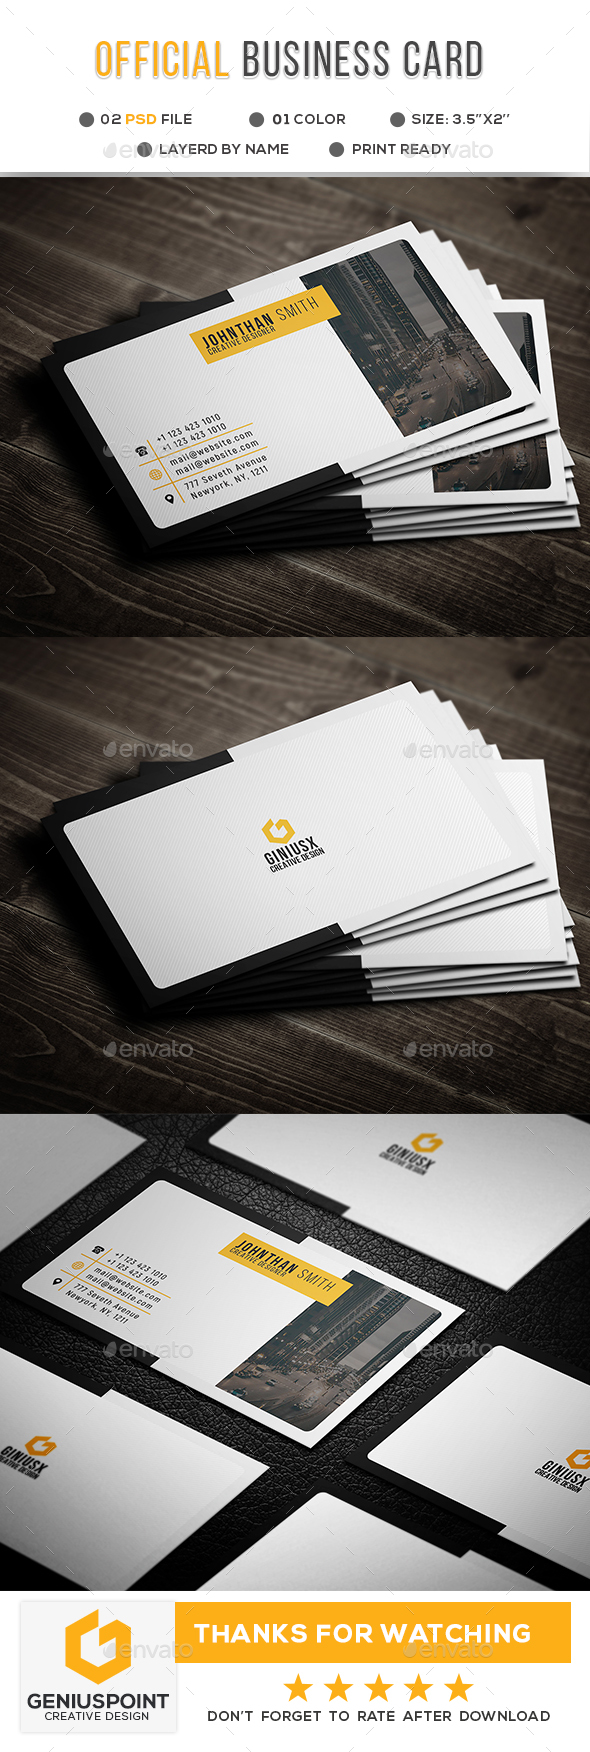 Official Business Card II - Corporate Business Cards